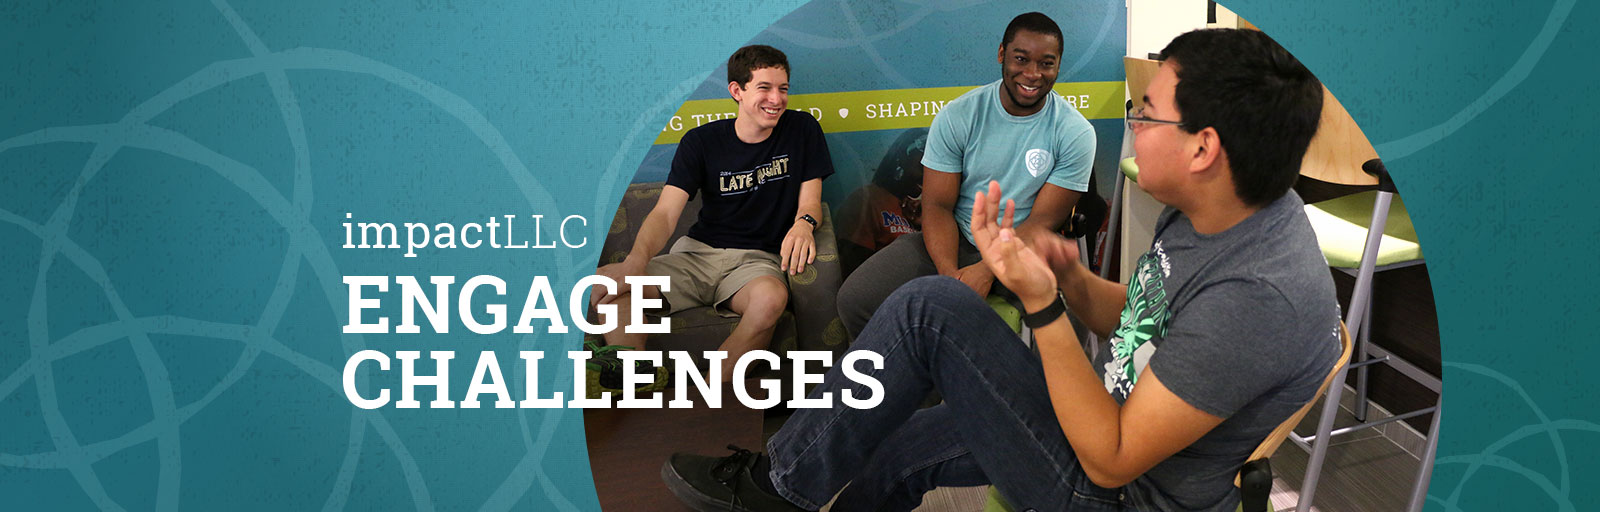 mc_llc-impact-engage challenges